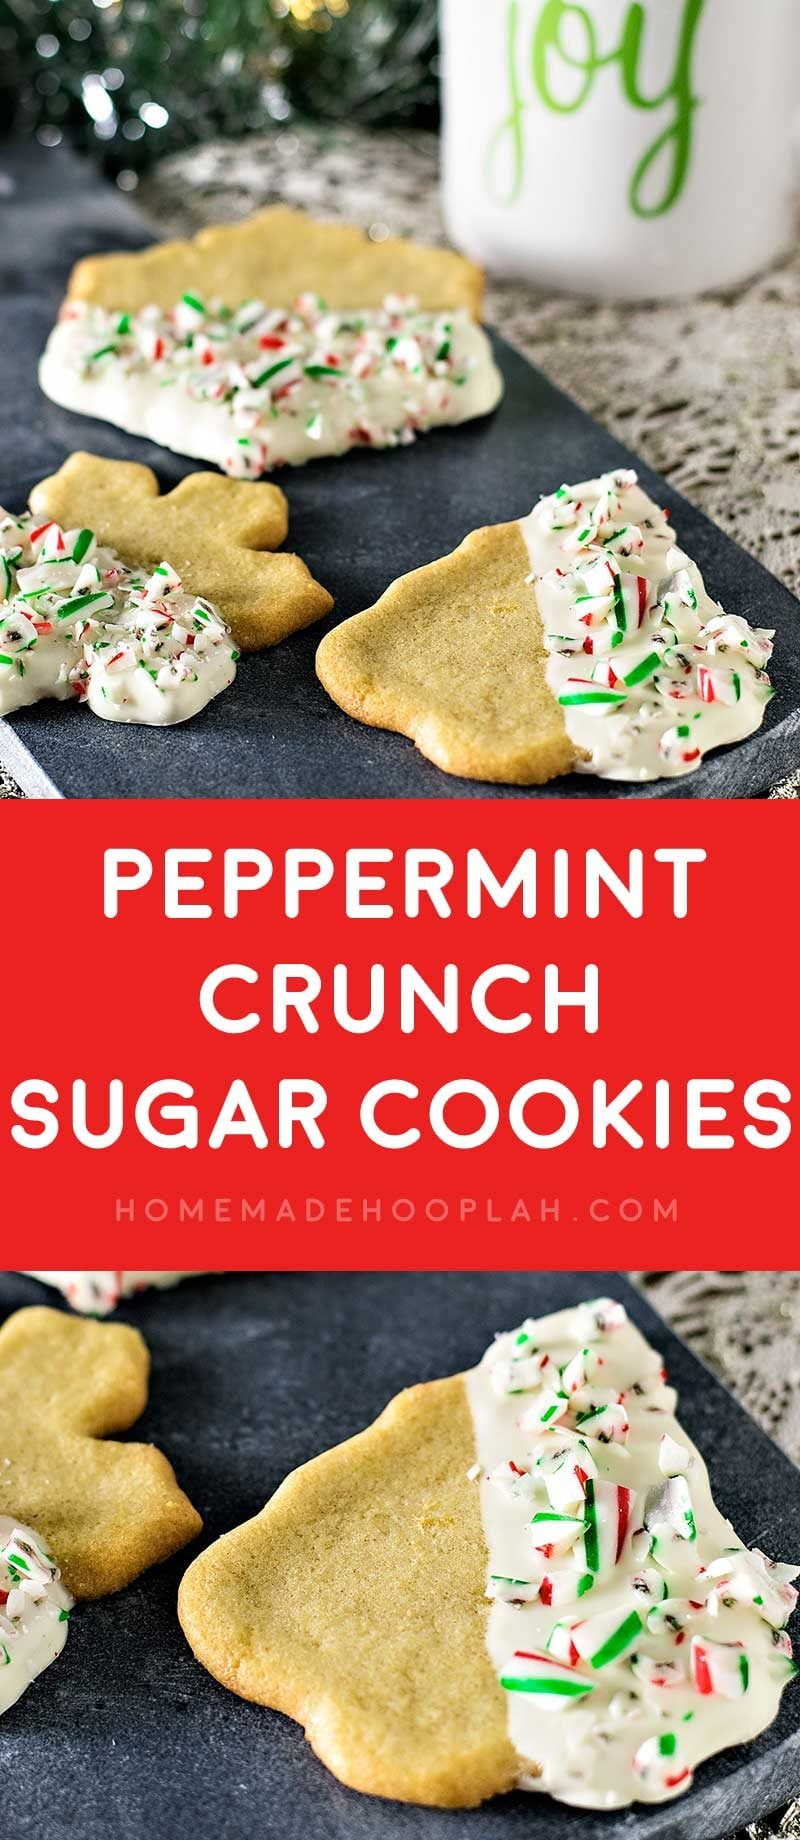 Peppermint Crunch Sugar Cookies! Festive sugar cookies with a twist: dipped in white chocolate and sprinkled with crushed candy canes. And they're only 4 ingredients to make! #NestleTollHouse #BakeSomeonesDay #HolidayRemix #ad | HomemadeHooplah.com